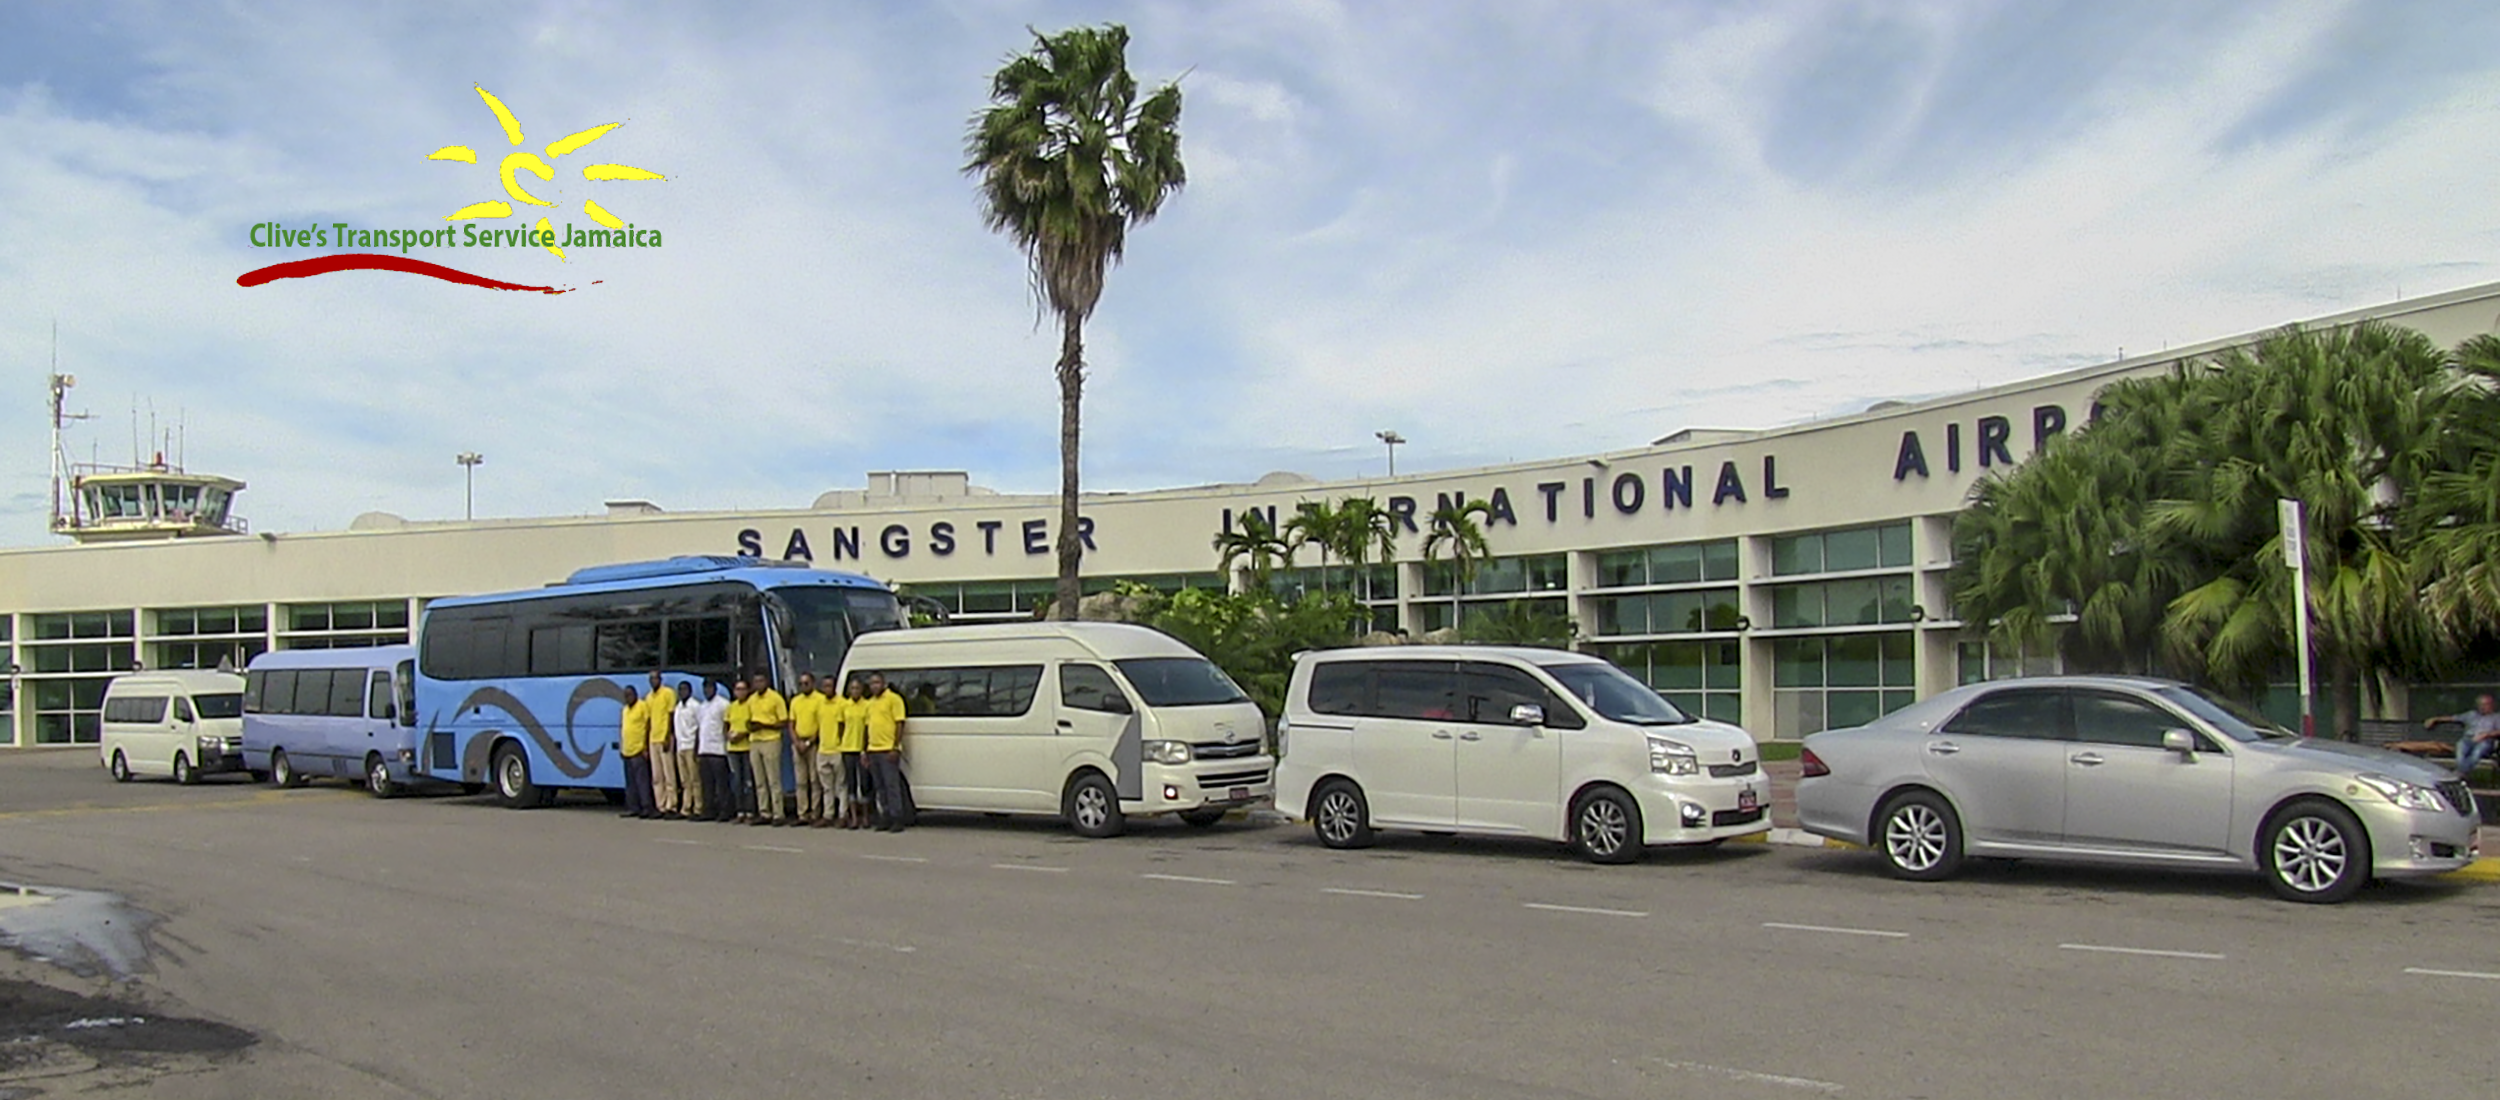 Clive's Transport Service Jamaica Staff and Vehicles at Sangster Internation Airport, Montego Bay Jamaica - www.clivestransportservicejamaica.com - www.clivestransportservicejamaica.net